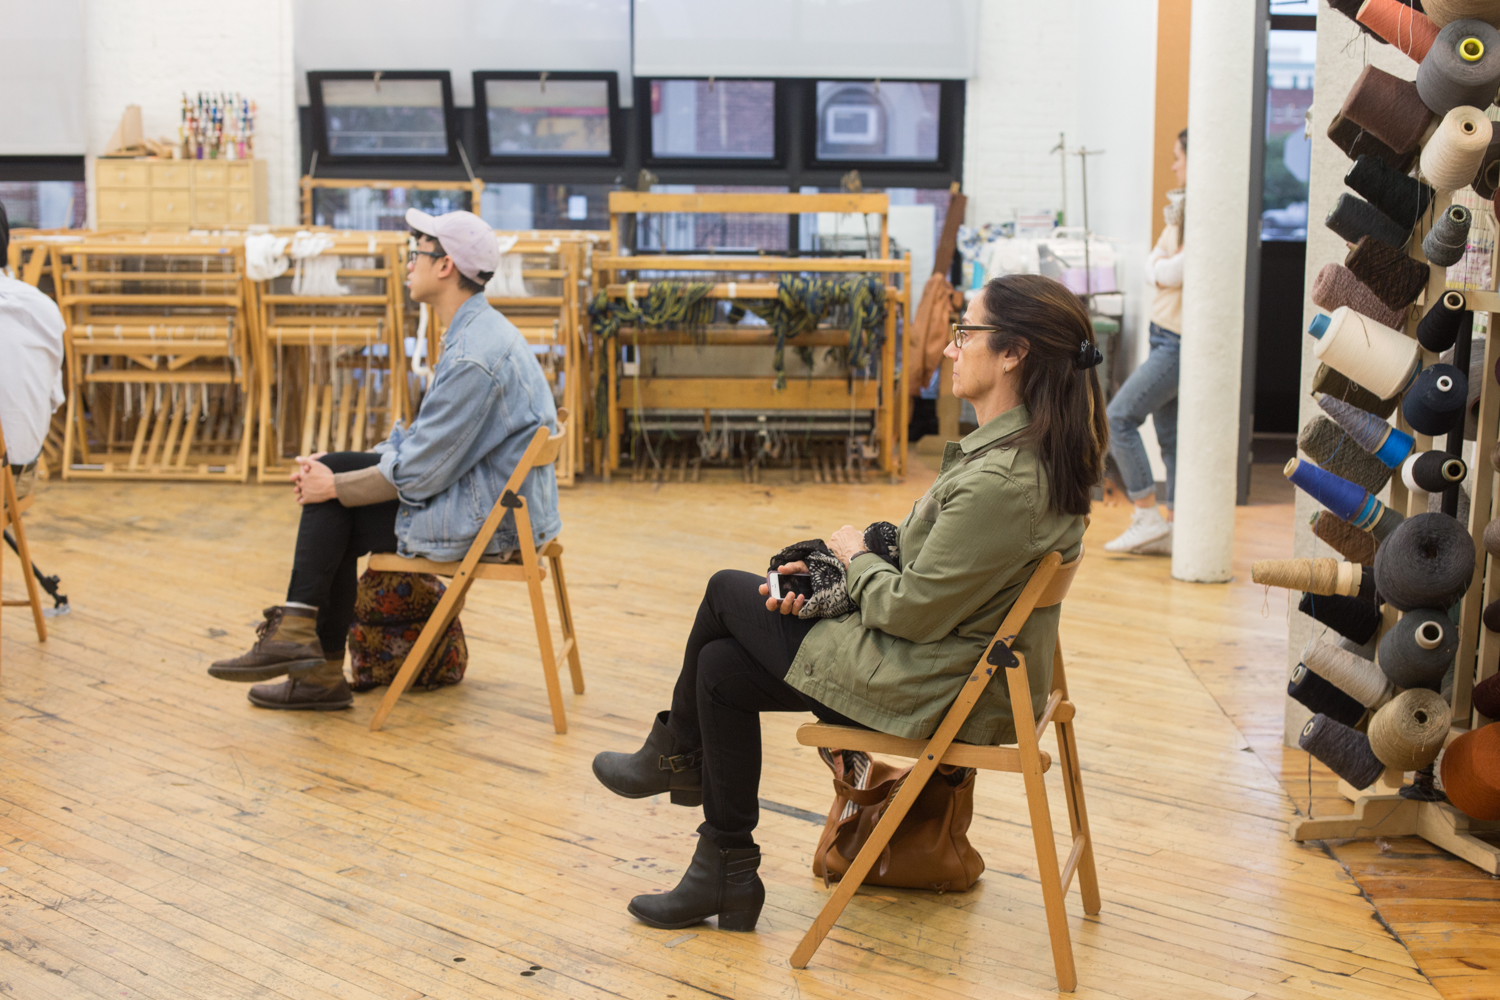 Two audience members watching the performance. Cones of yarn and weaving looms are in the background.